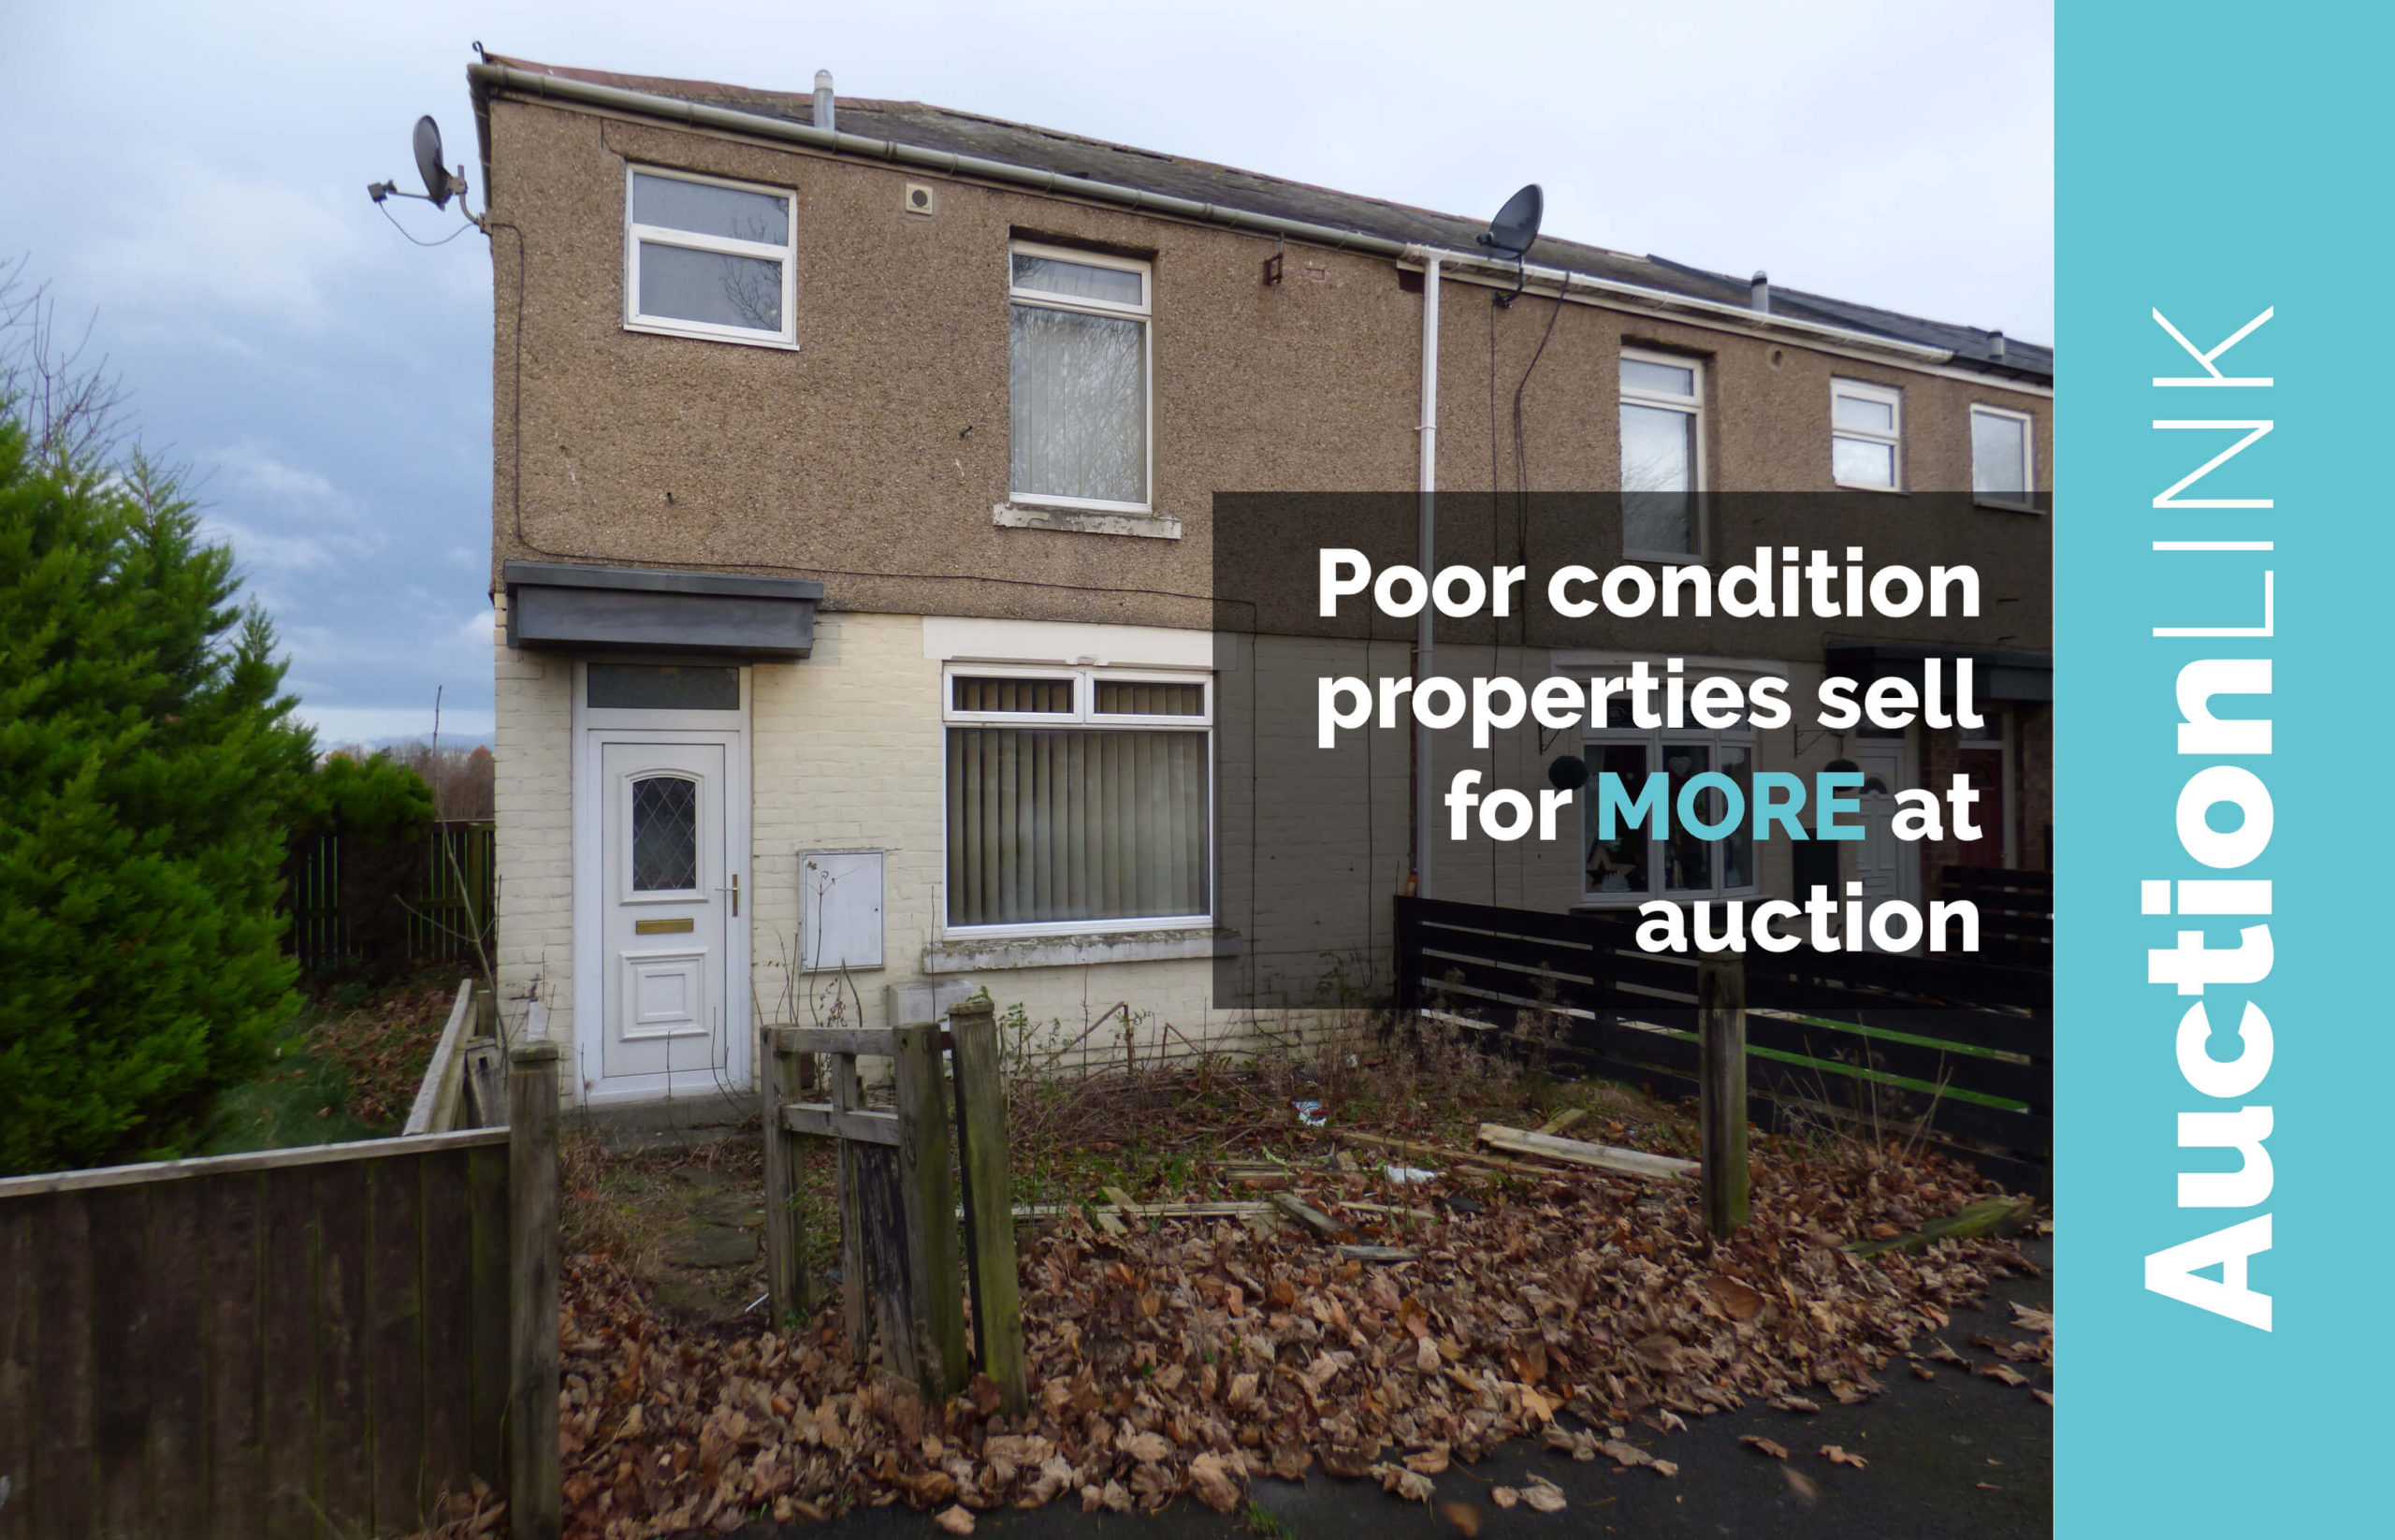 poor condition houses sell for more at auction